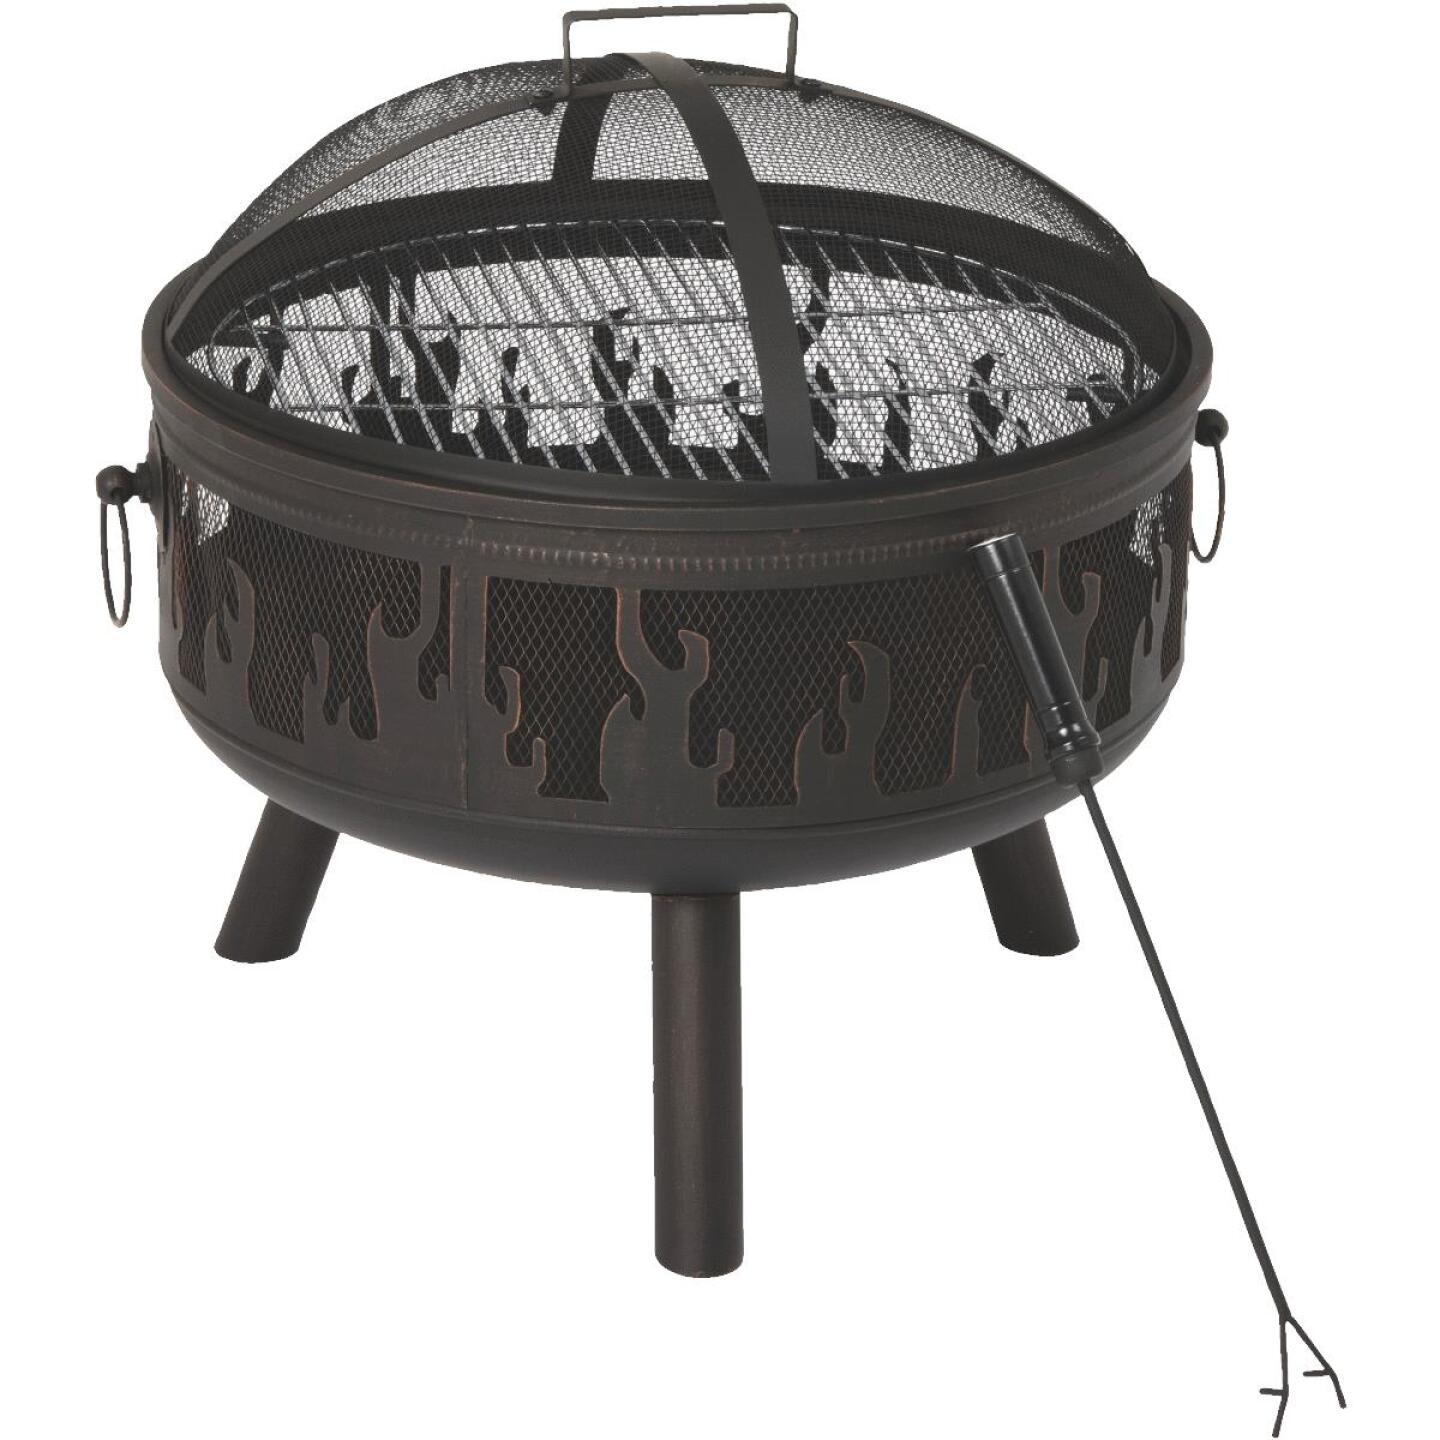 Outdoor Expressions 24 In. Antique Bronze Round Steel Fire Pit Image 1